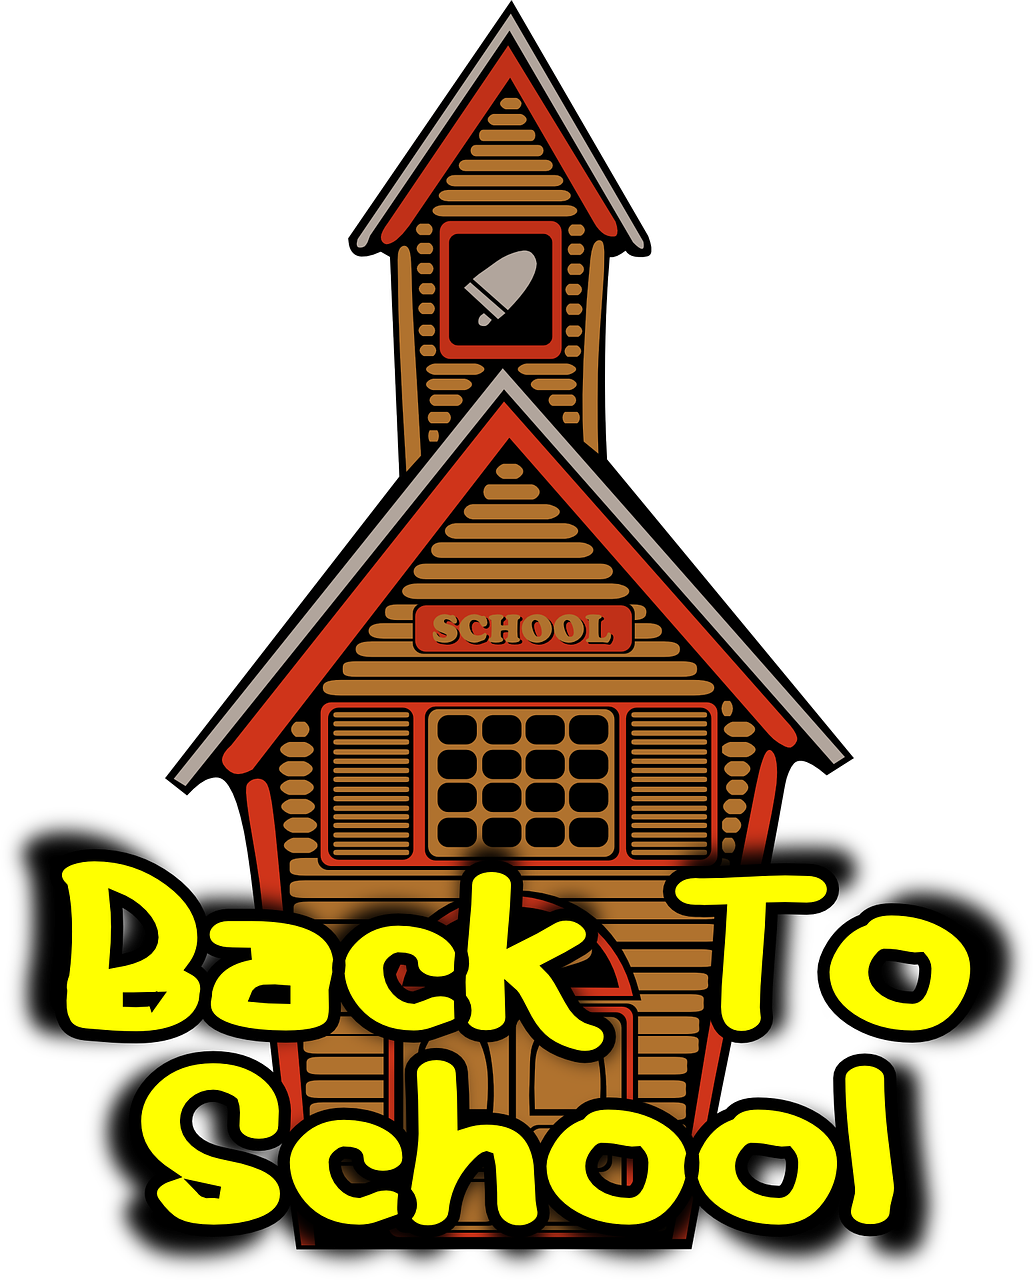 back to school school back free photo